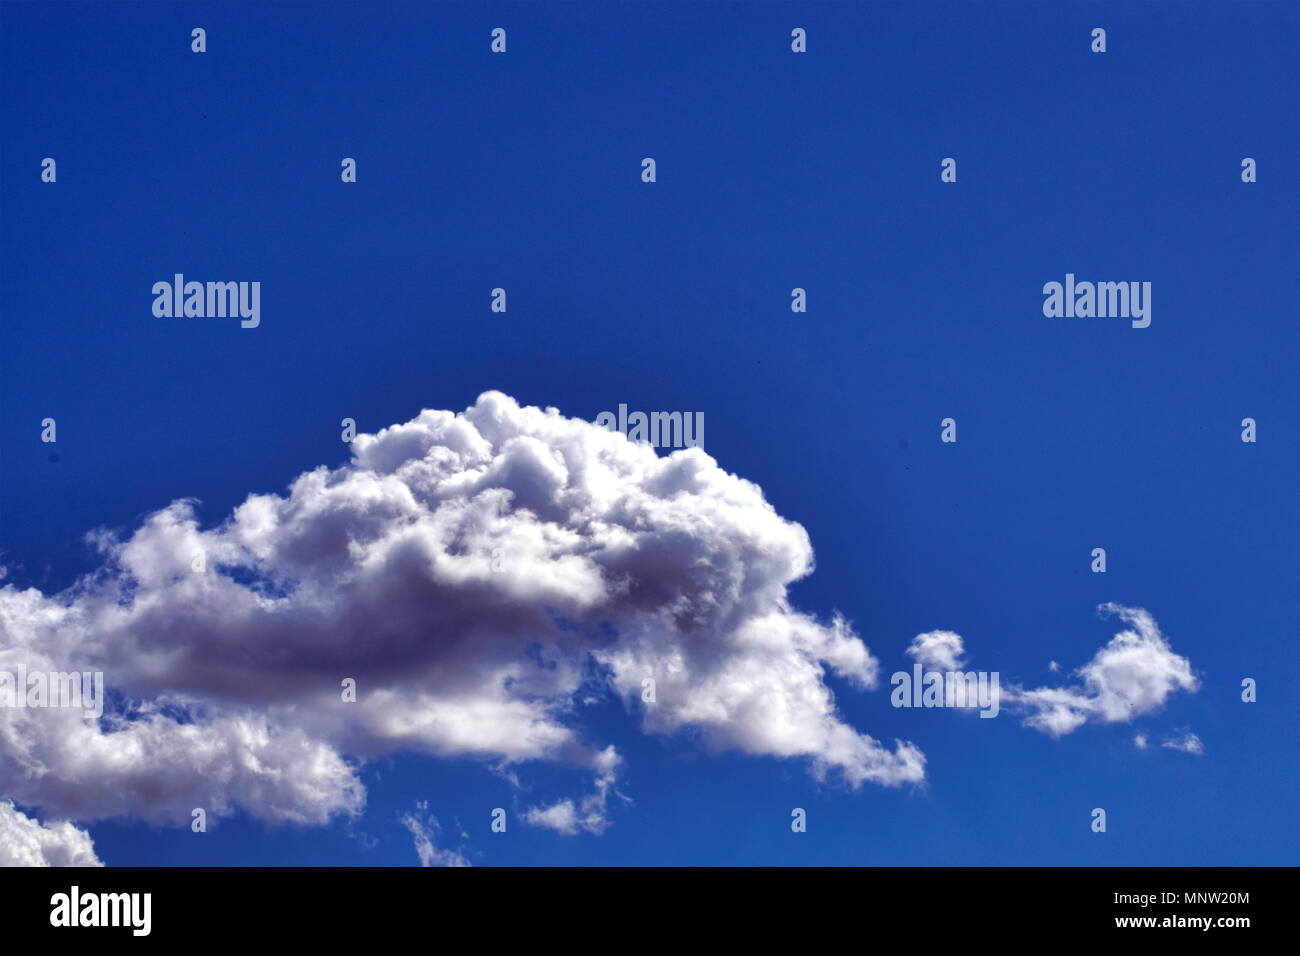 White fluffy clouds in the vast blue sky. Predominantly sky, copy space. Abstract nature background. Close-up. - Stock Image